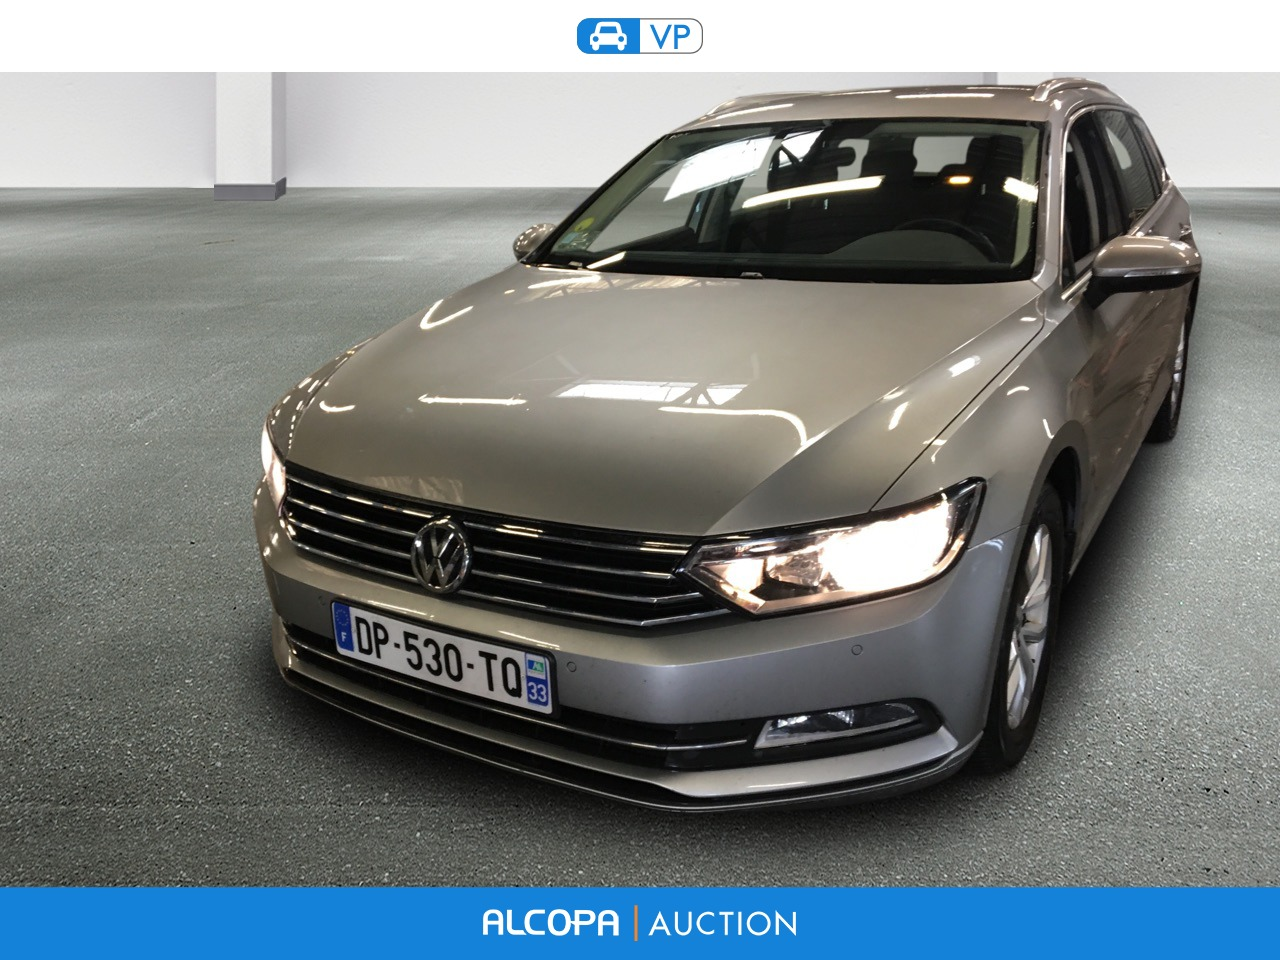 volkswagen passat sw passat sw 1 6 tdi 120 bmt confortline alcopa auction. Black Bedroom Furniture Sets. Home Design Ideas